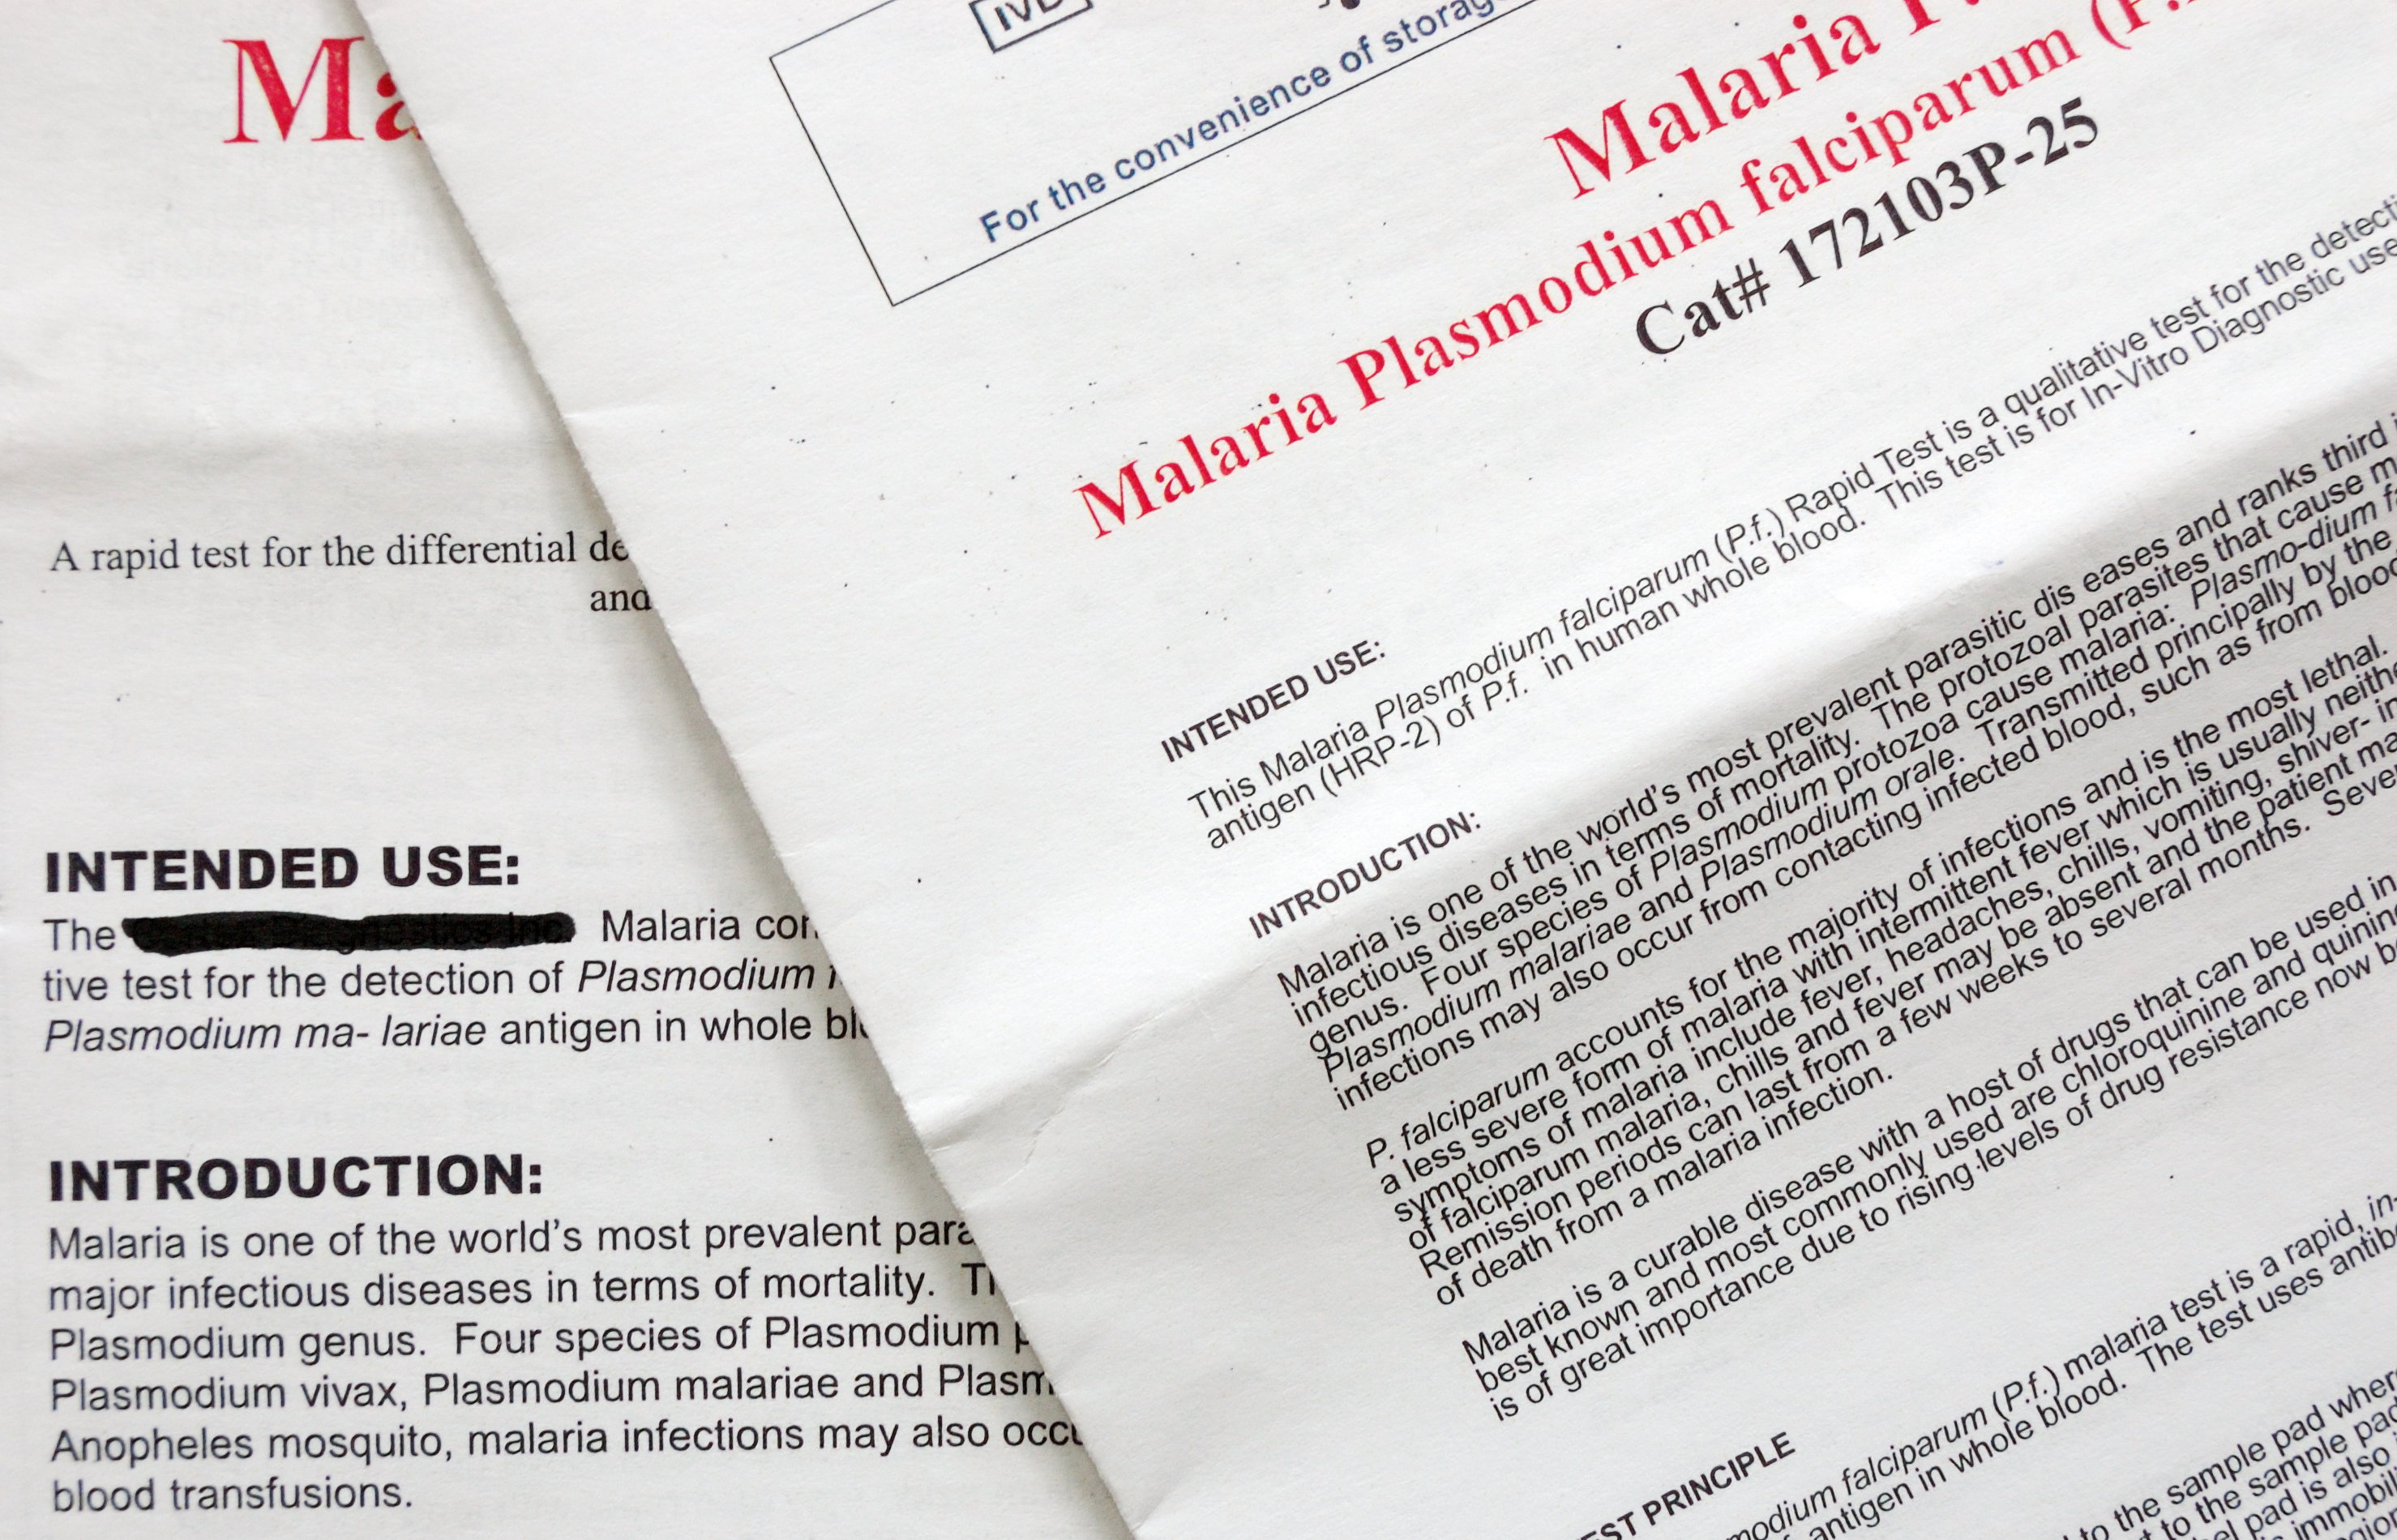 a comprehensive research paper on malaria Free example research paper on malaria malaria research paper sample for free find other free essays, term papers, dissertations on malaria topics here.